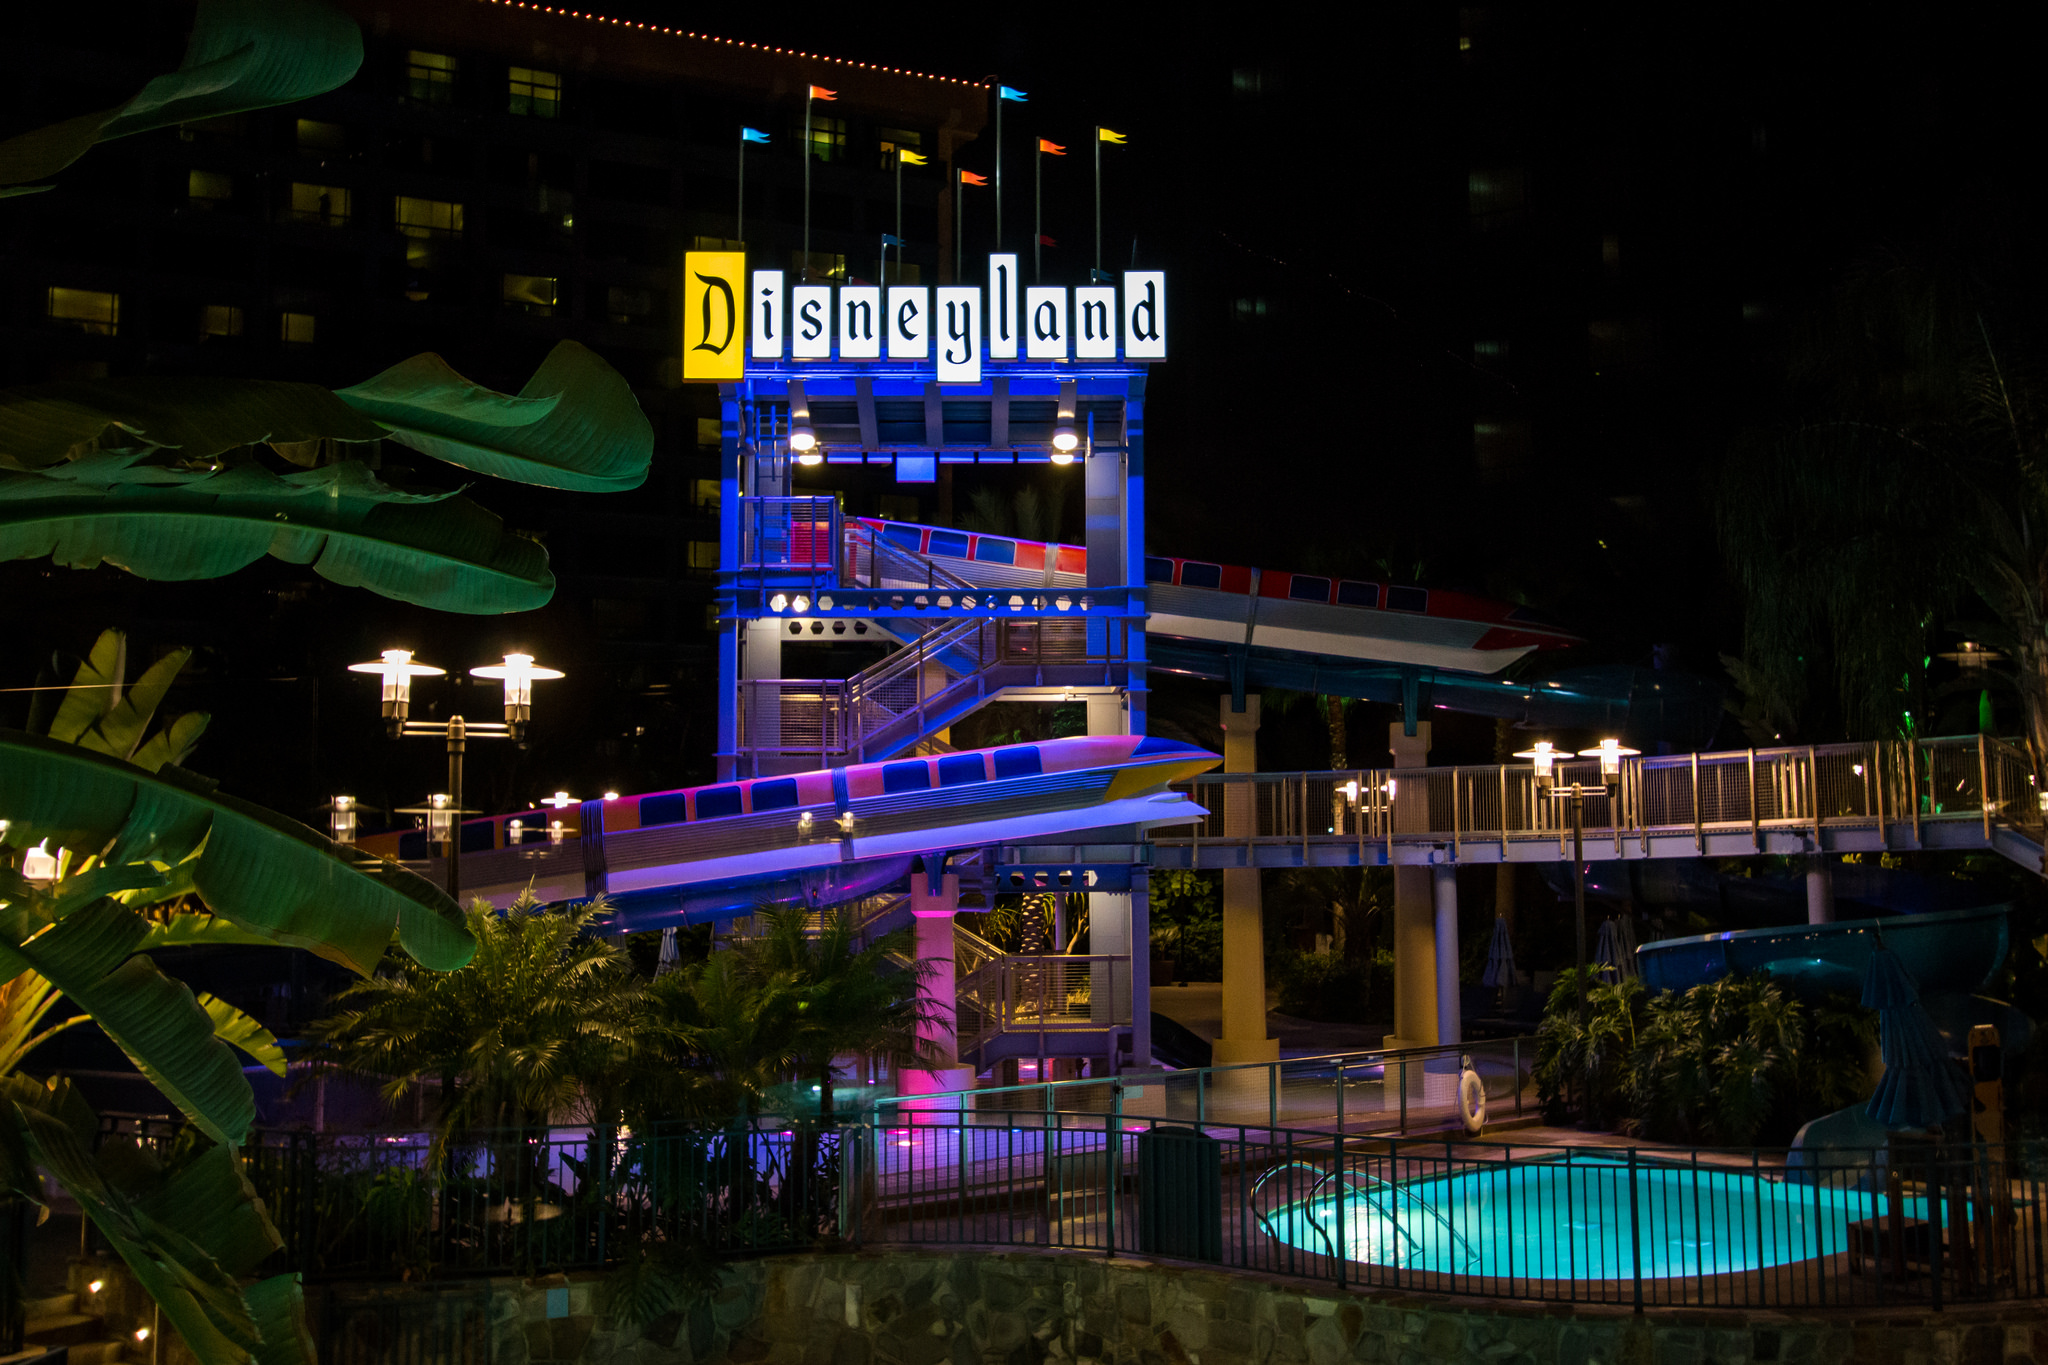 anaheim hotels with kitchen near disneyland pot sets 10 for all budgets